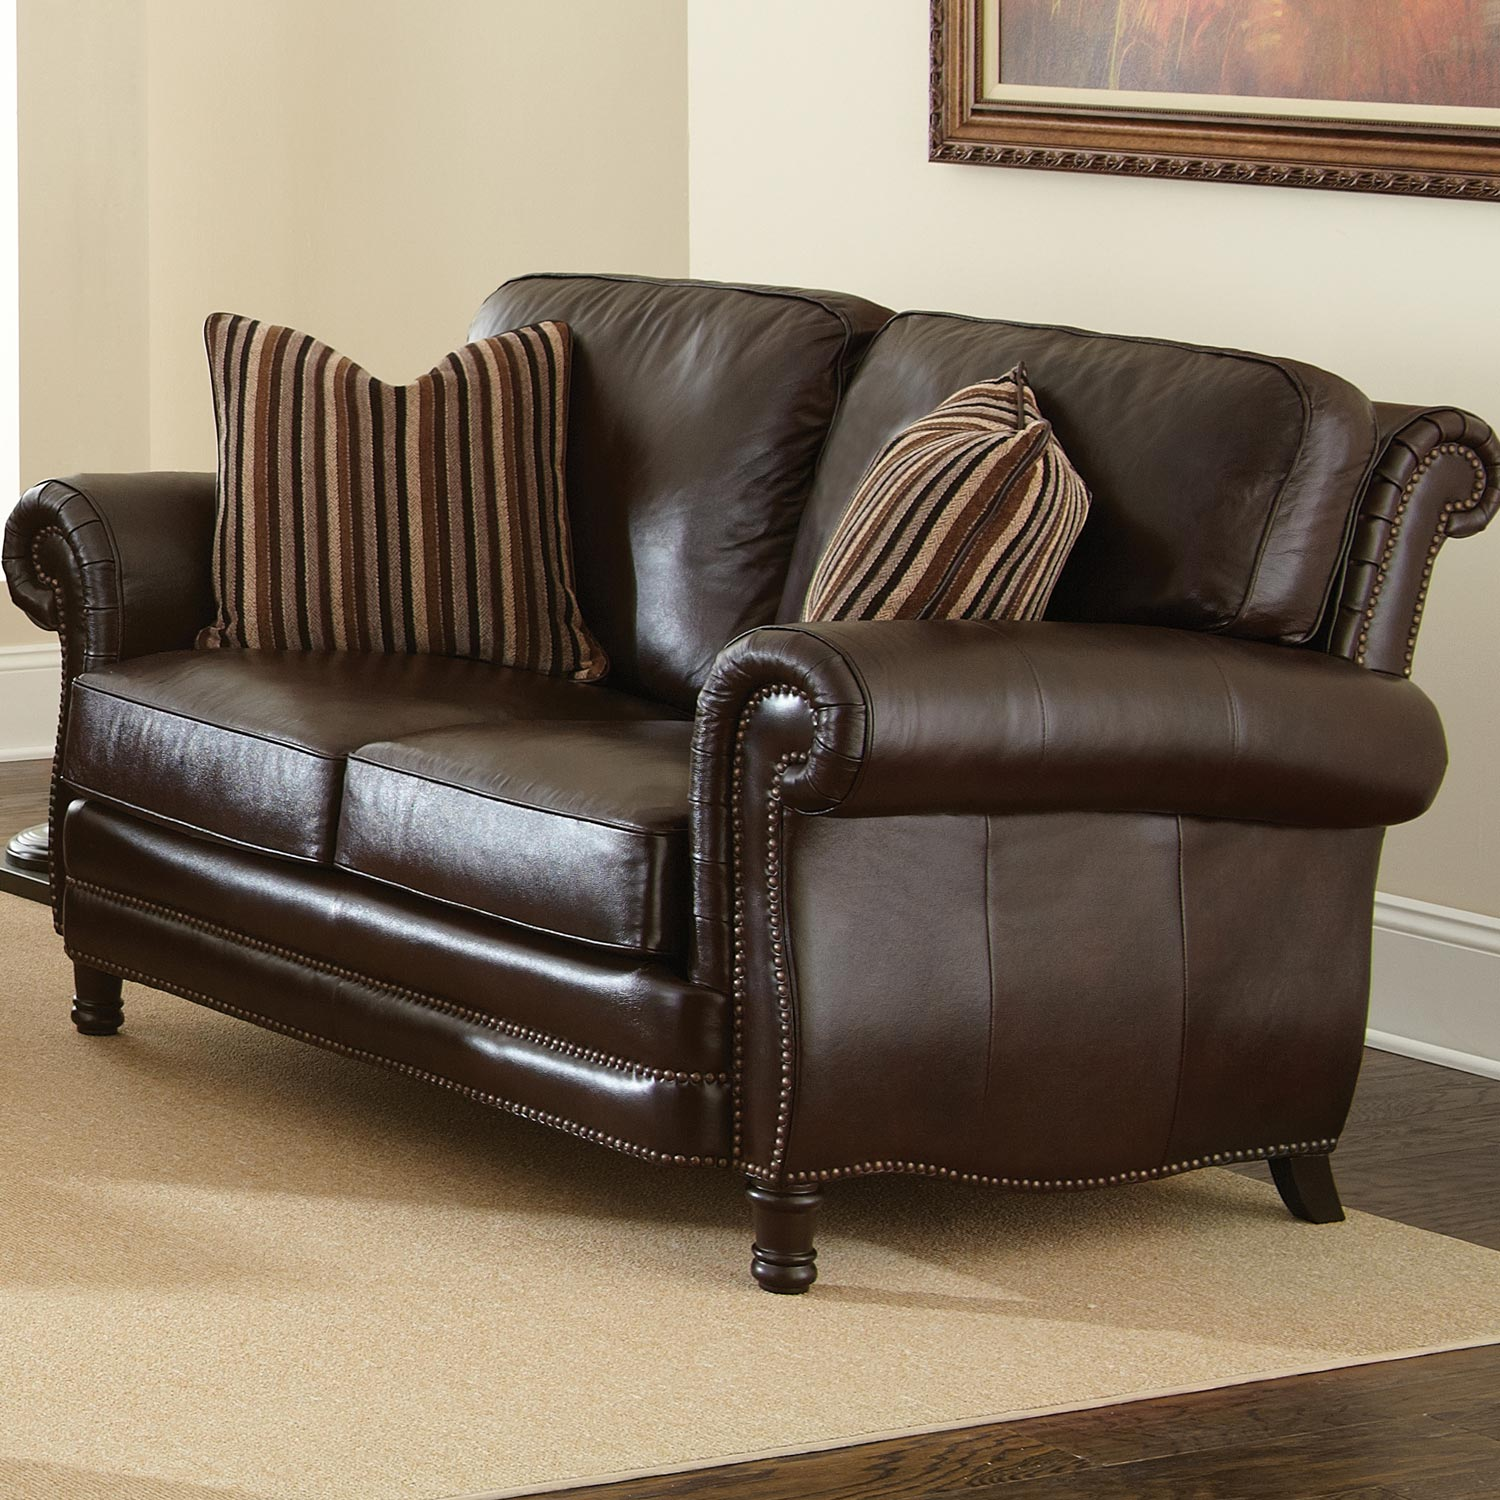 Chateau Leather Loveseat - Nail Heads, Antique Chocolate Brown - SSC-CH860L